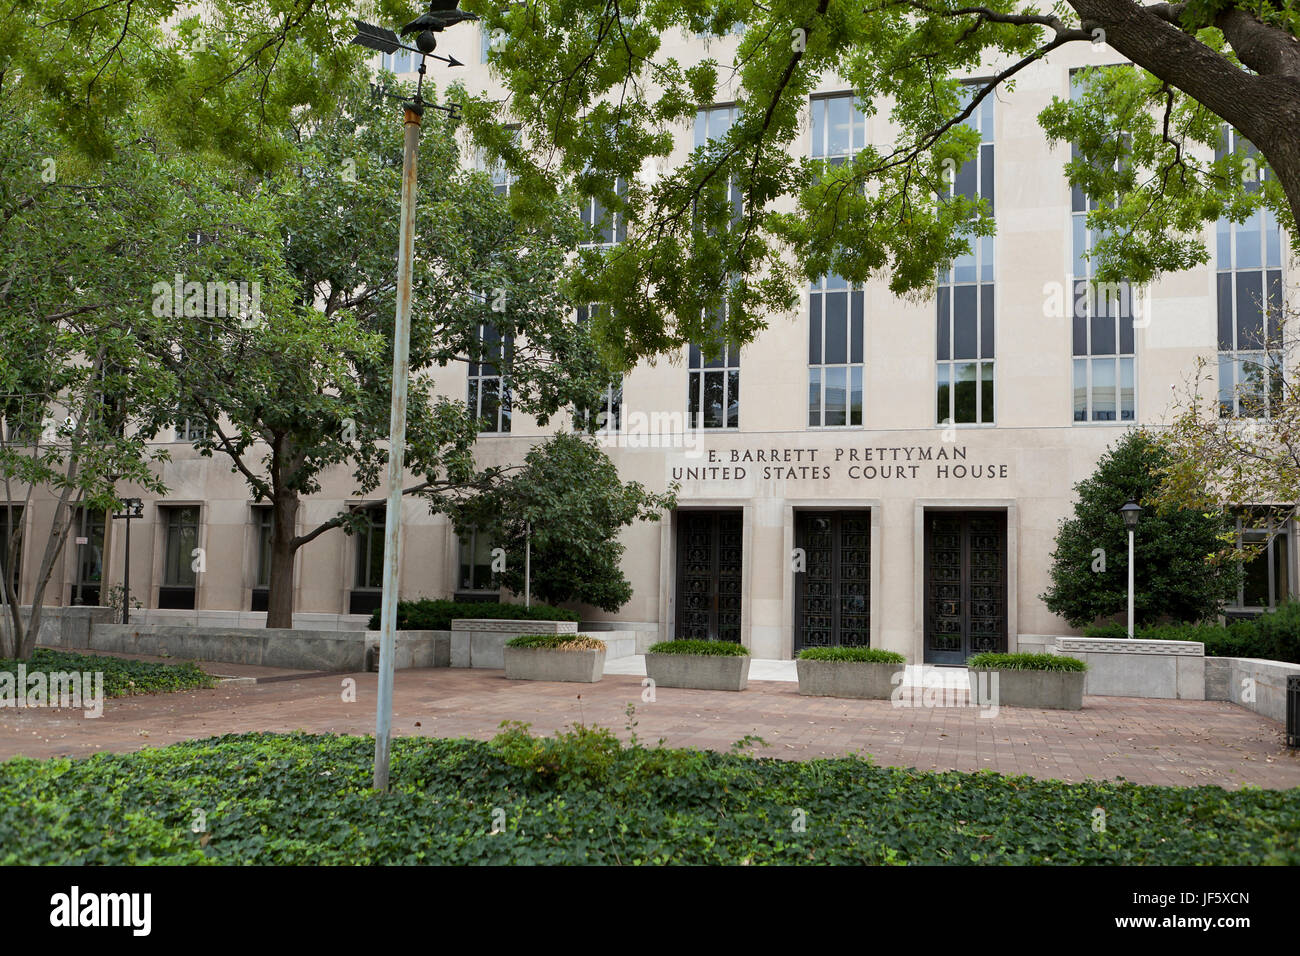 E Barrett Prettyman US Courthouse building (United States Court House, Federal Court, Federal Courthouse, Federal - Stock Image